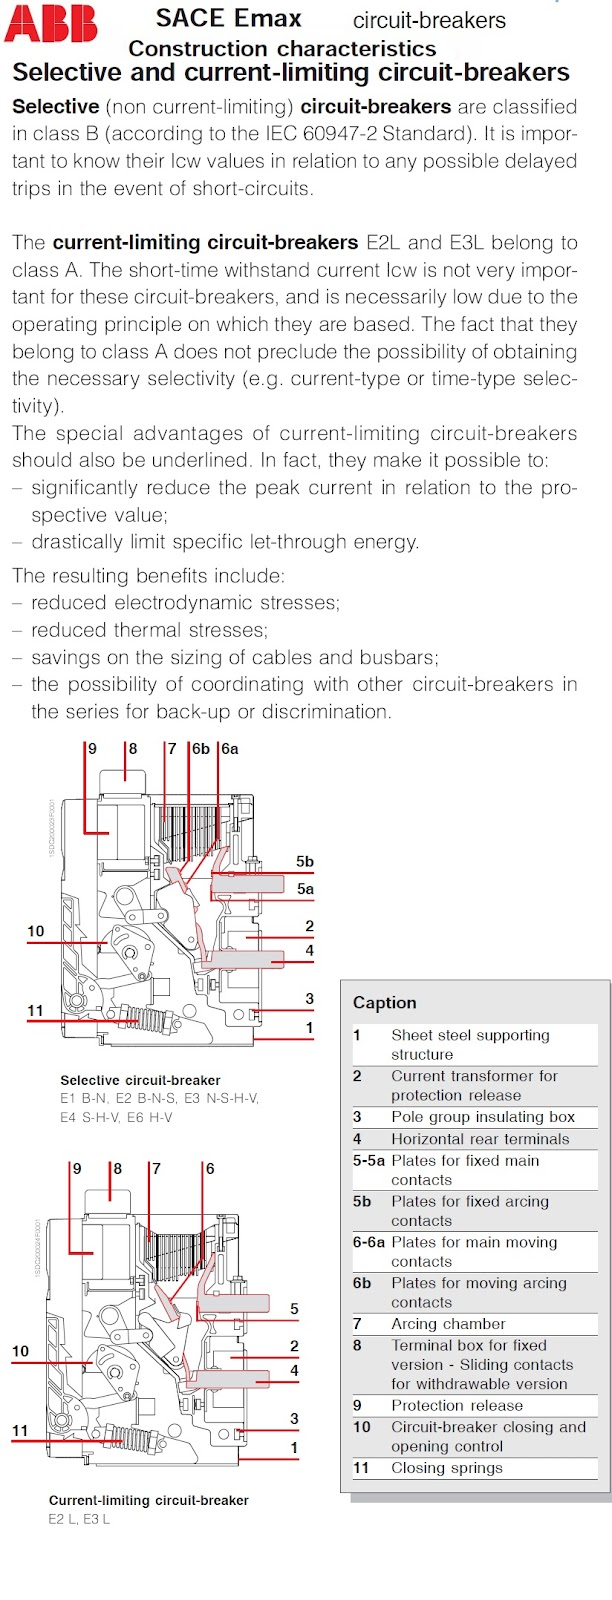 medium resolution of abb sace emax circuit breakers selective and current limiting circuit breakers